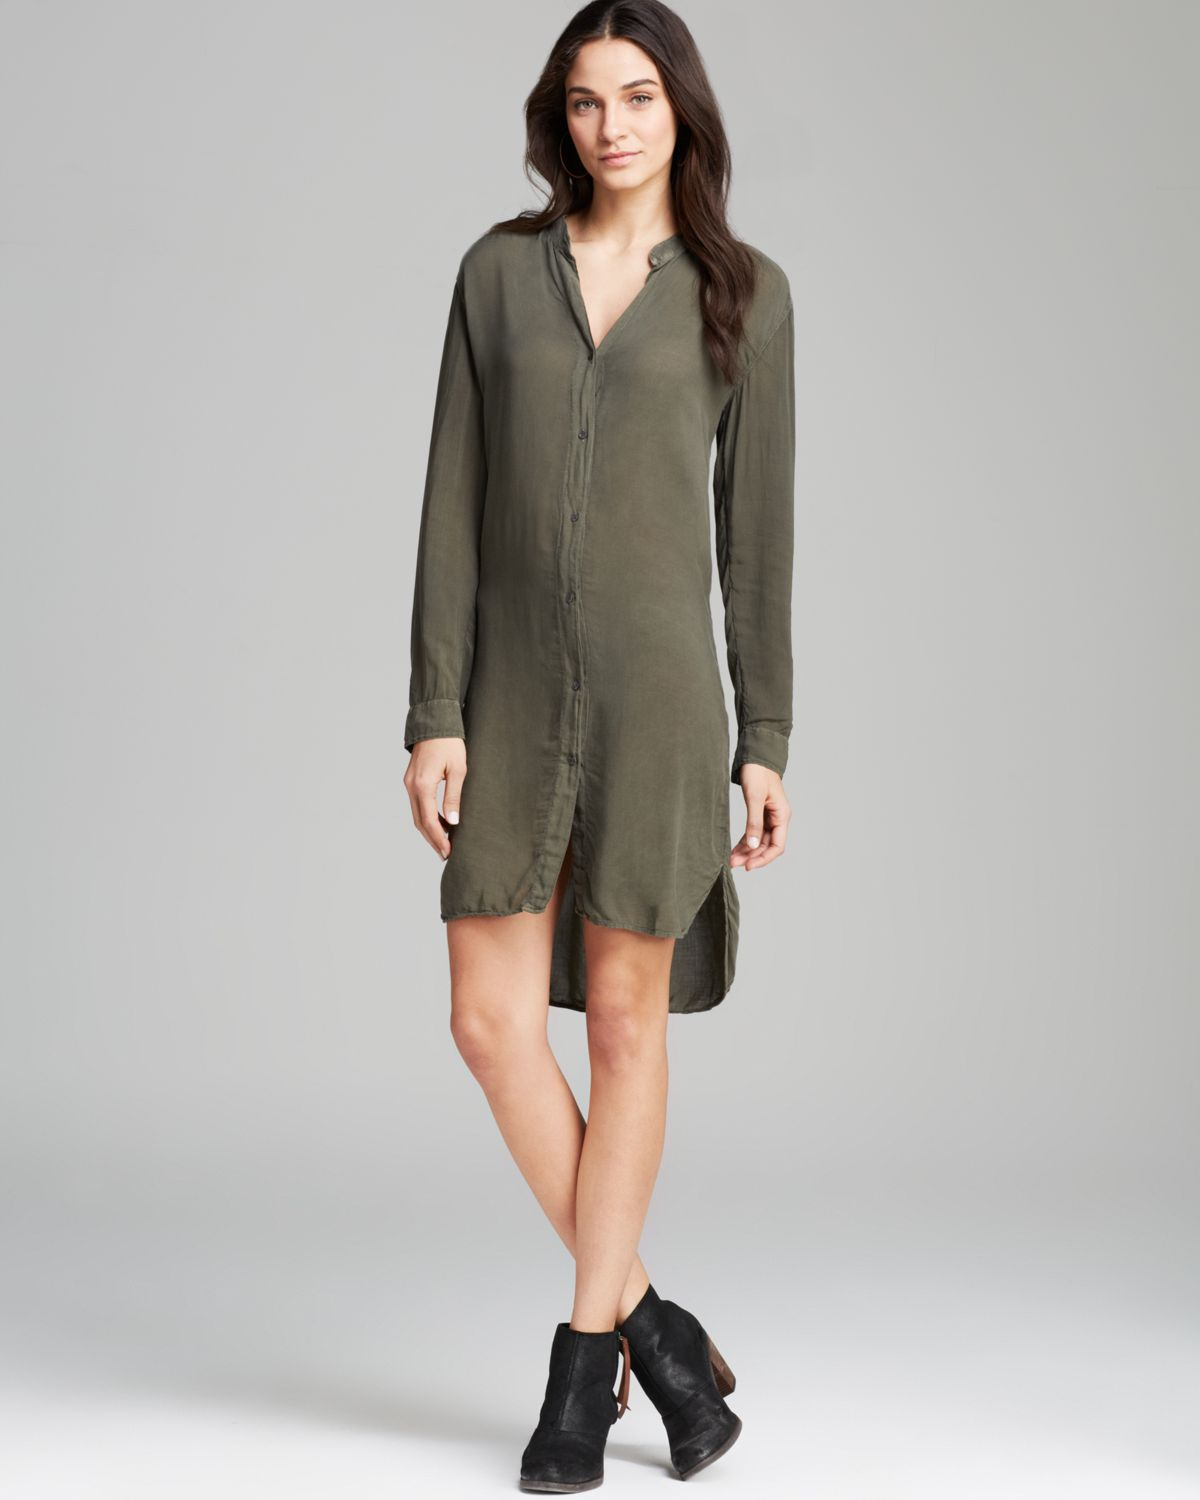 c030fd749fa6 James Perse Shirt Dress Button Down in Green - Lyst